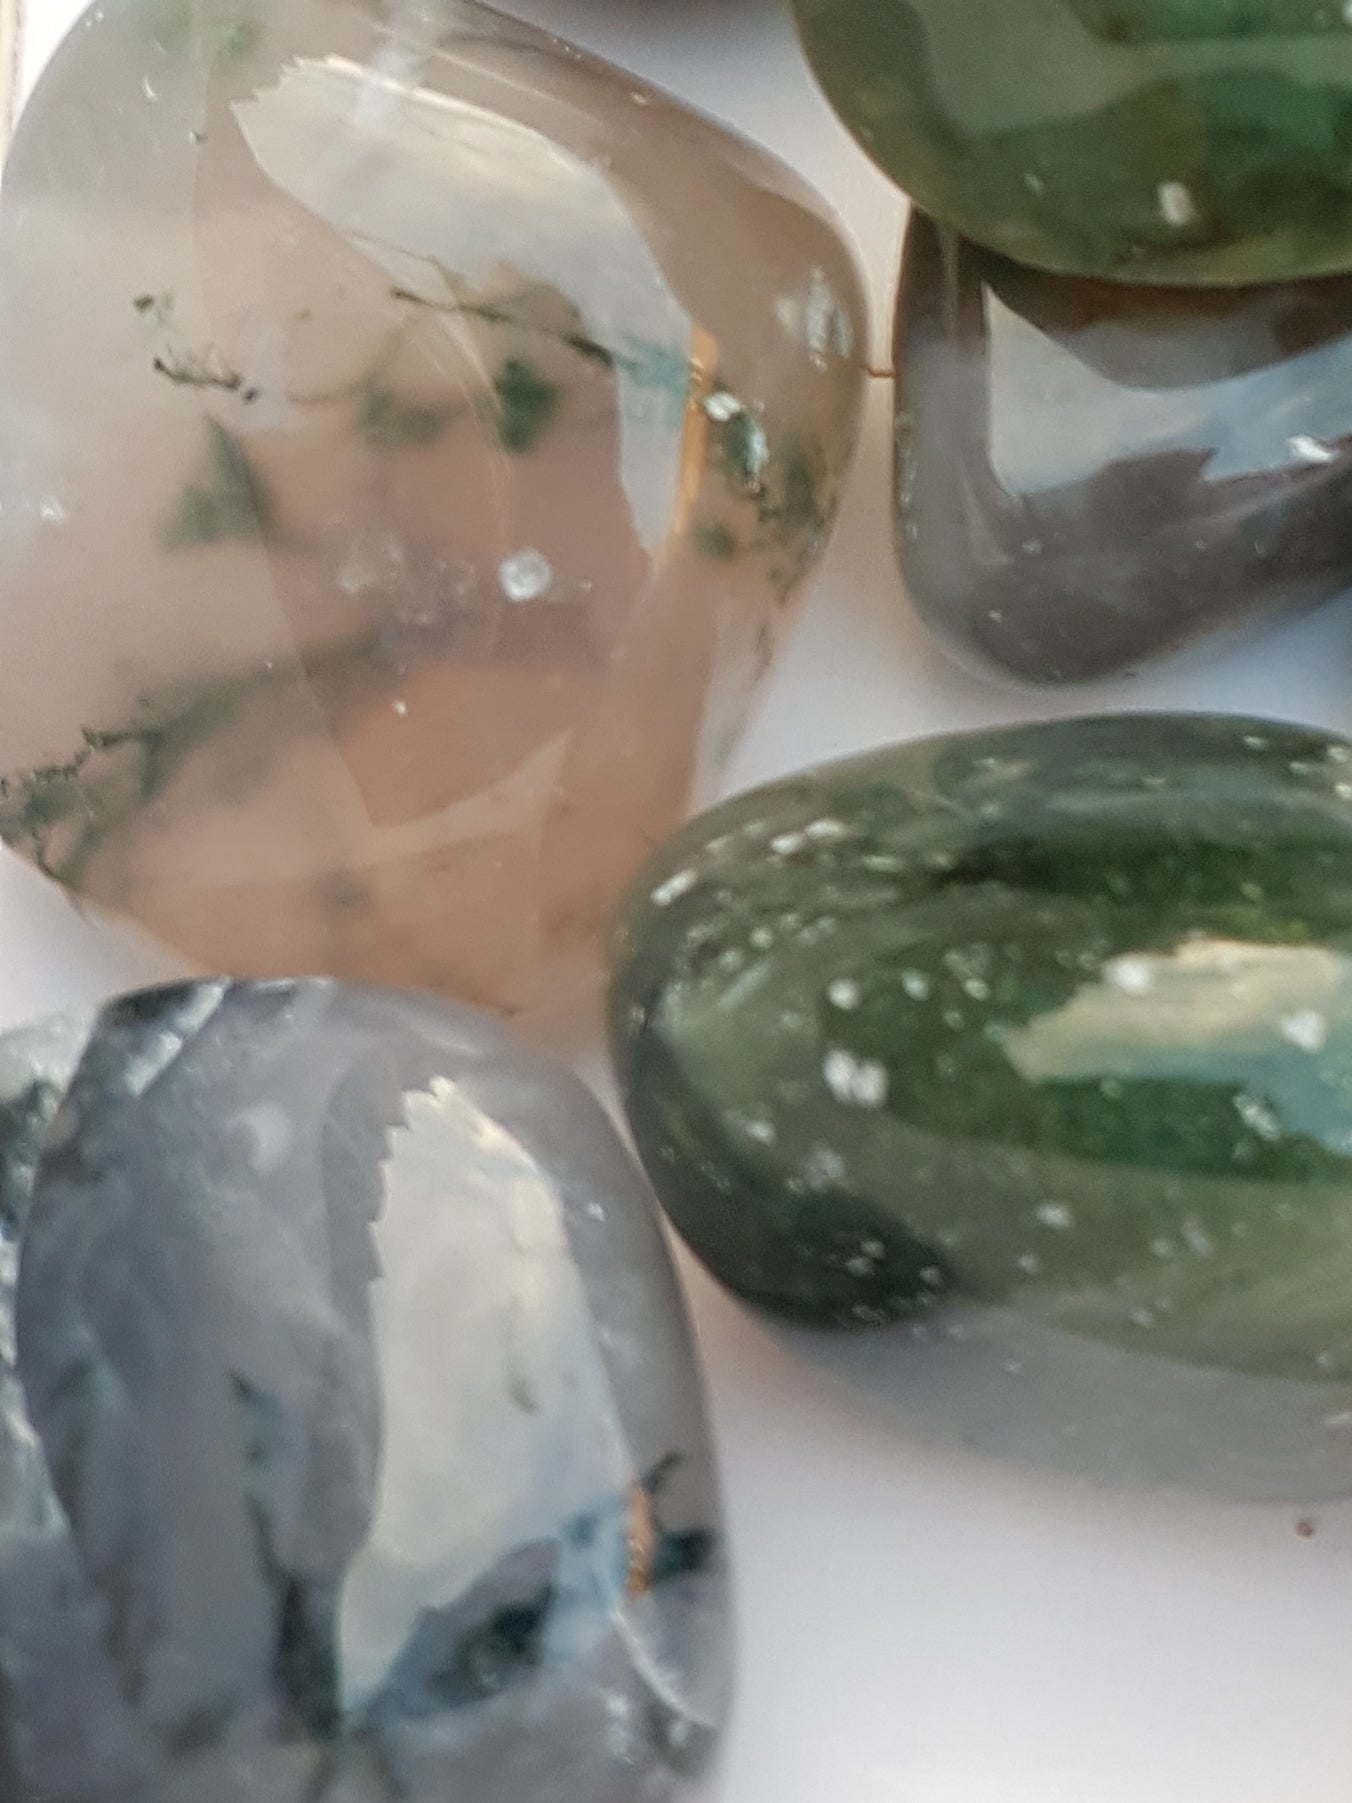 a close up of three tumbled pieces of green moss agate. The pieces are translucent and clear. Inside the stone are strands of a dark green material.